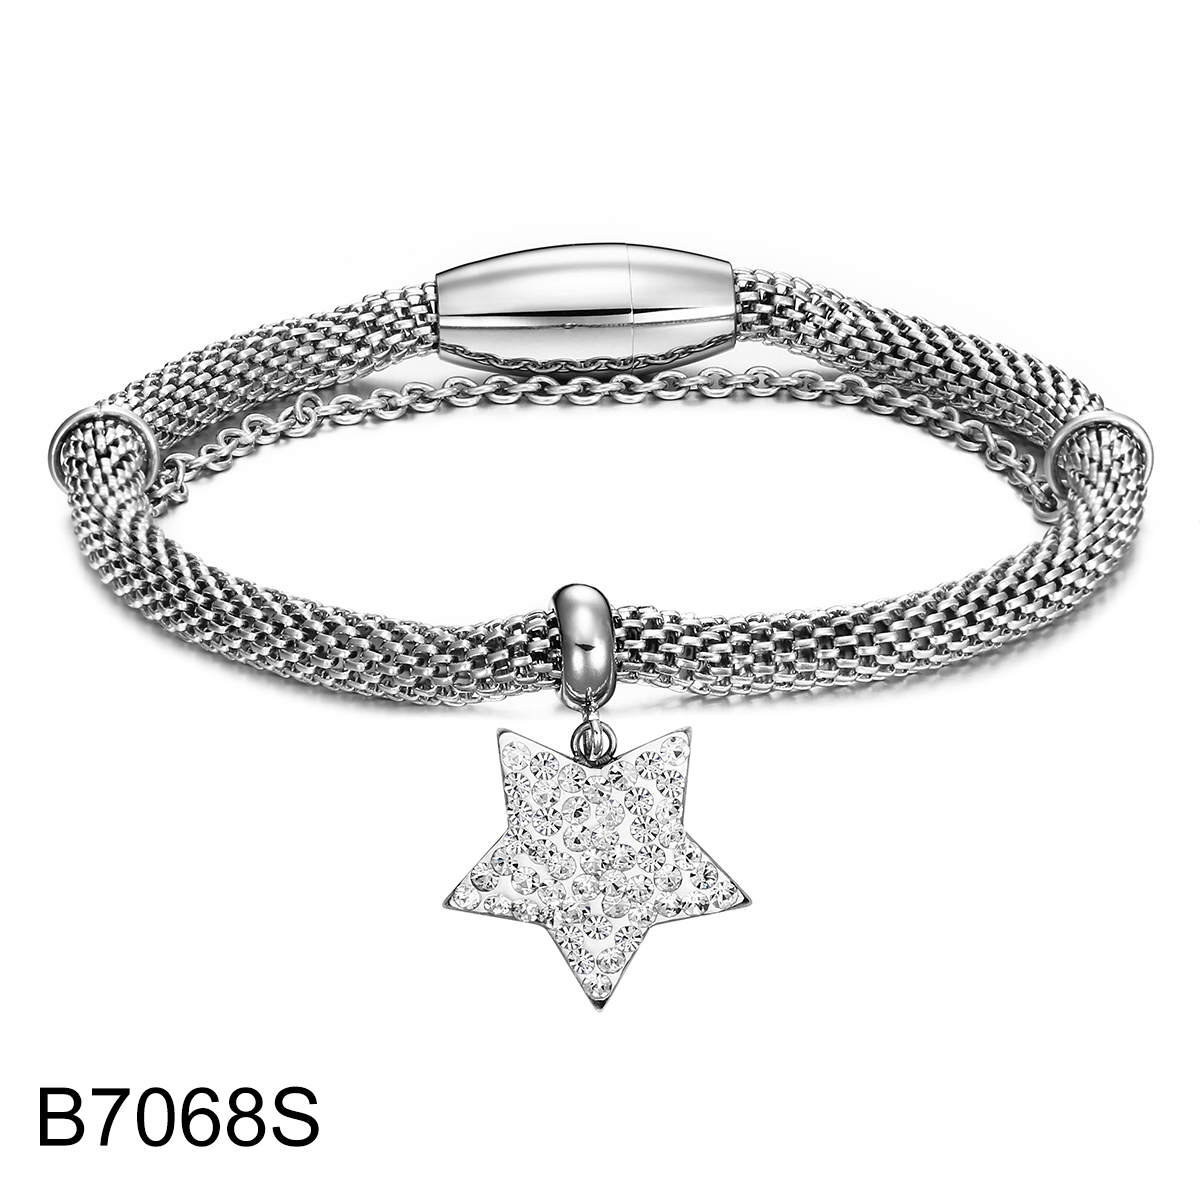 B7068S sliver double chain w...